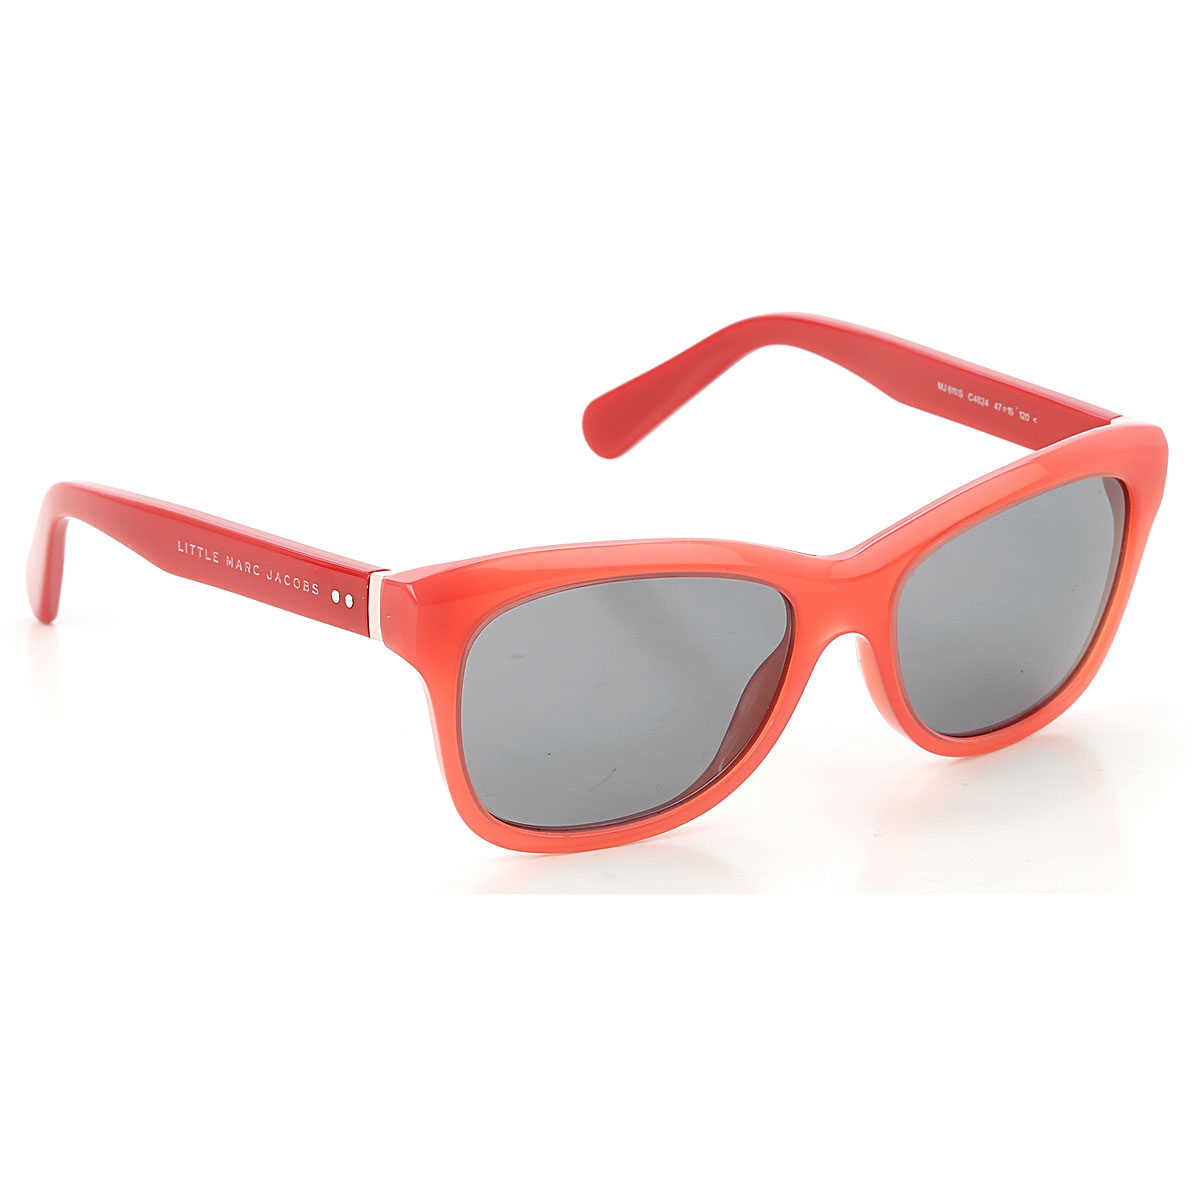 Marc Jacobs Kids Sunglasses for Boys On Sale Red Pink SE - GOOFASH